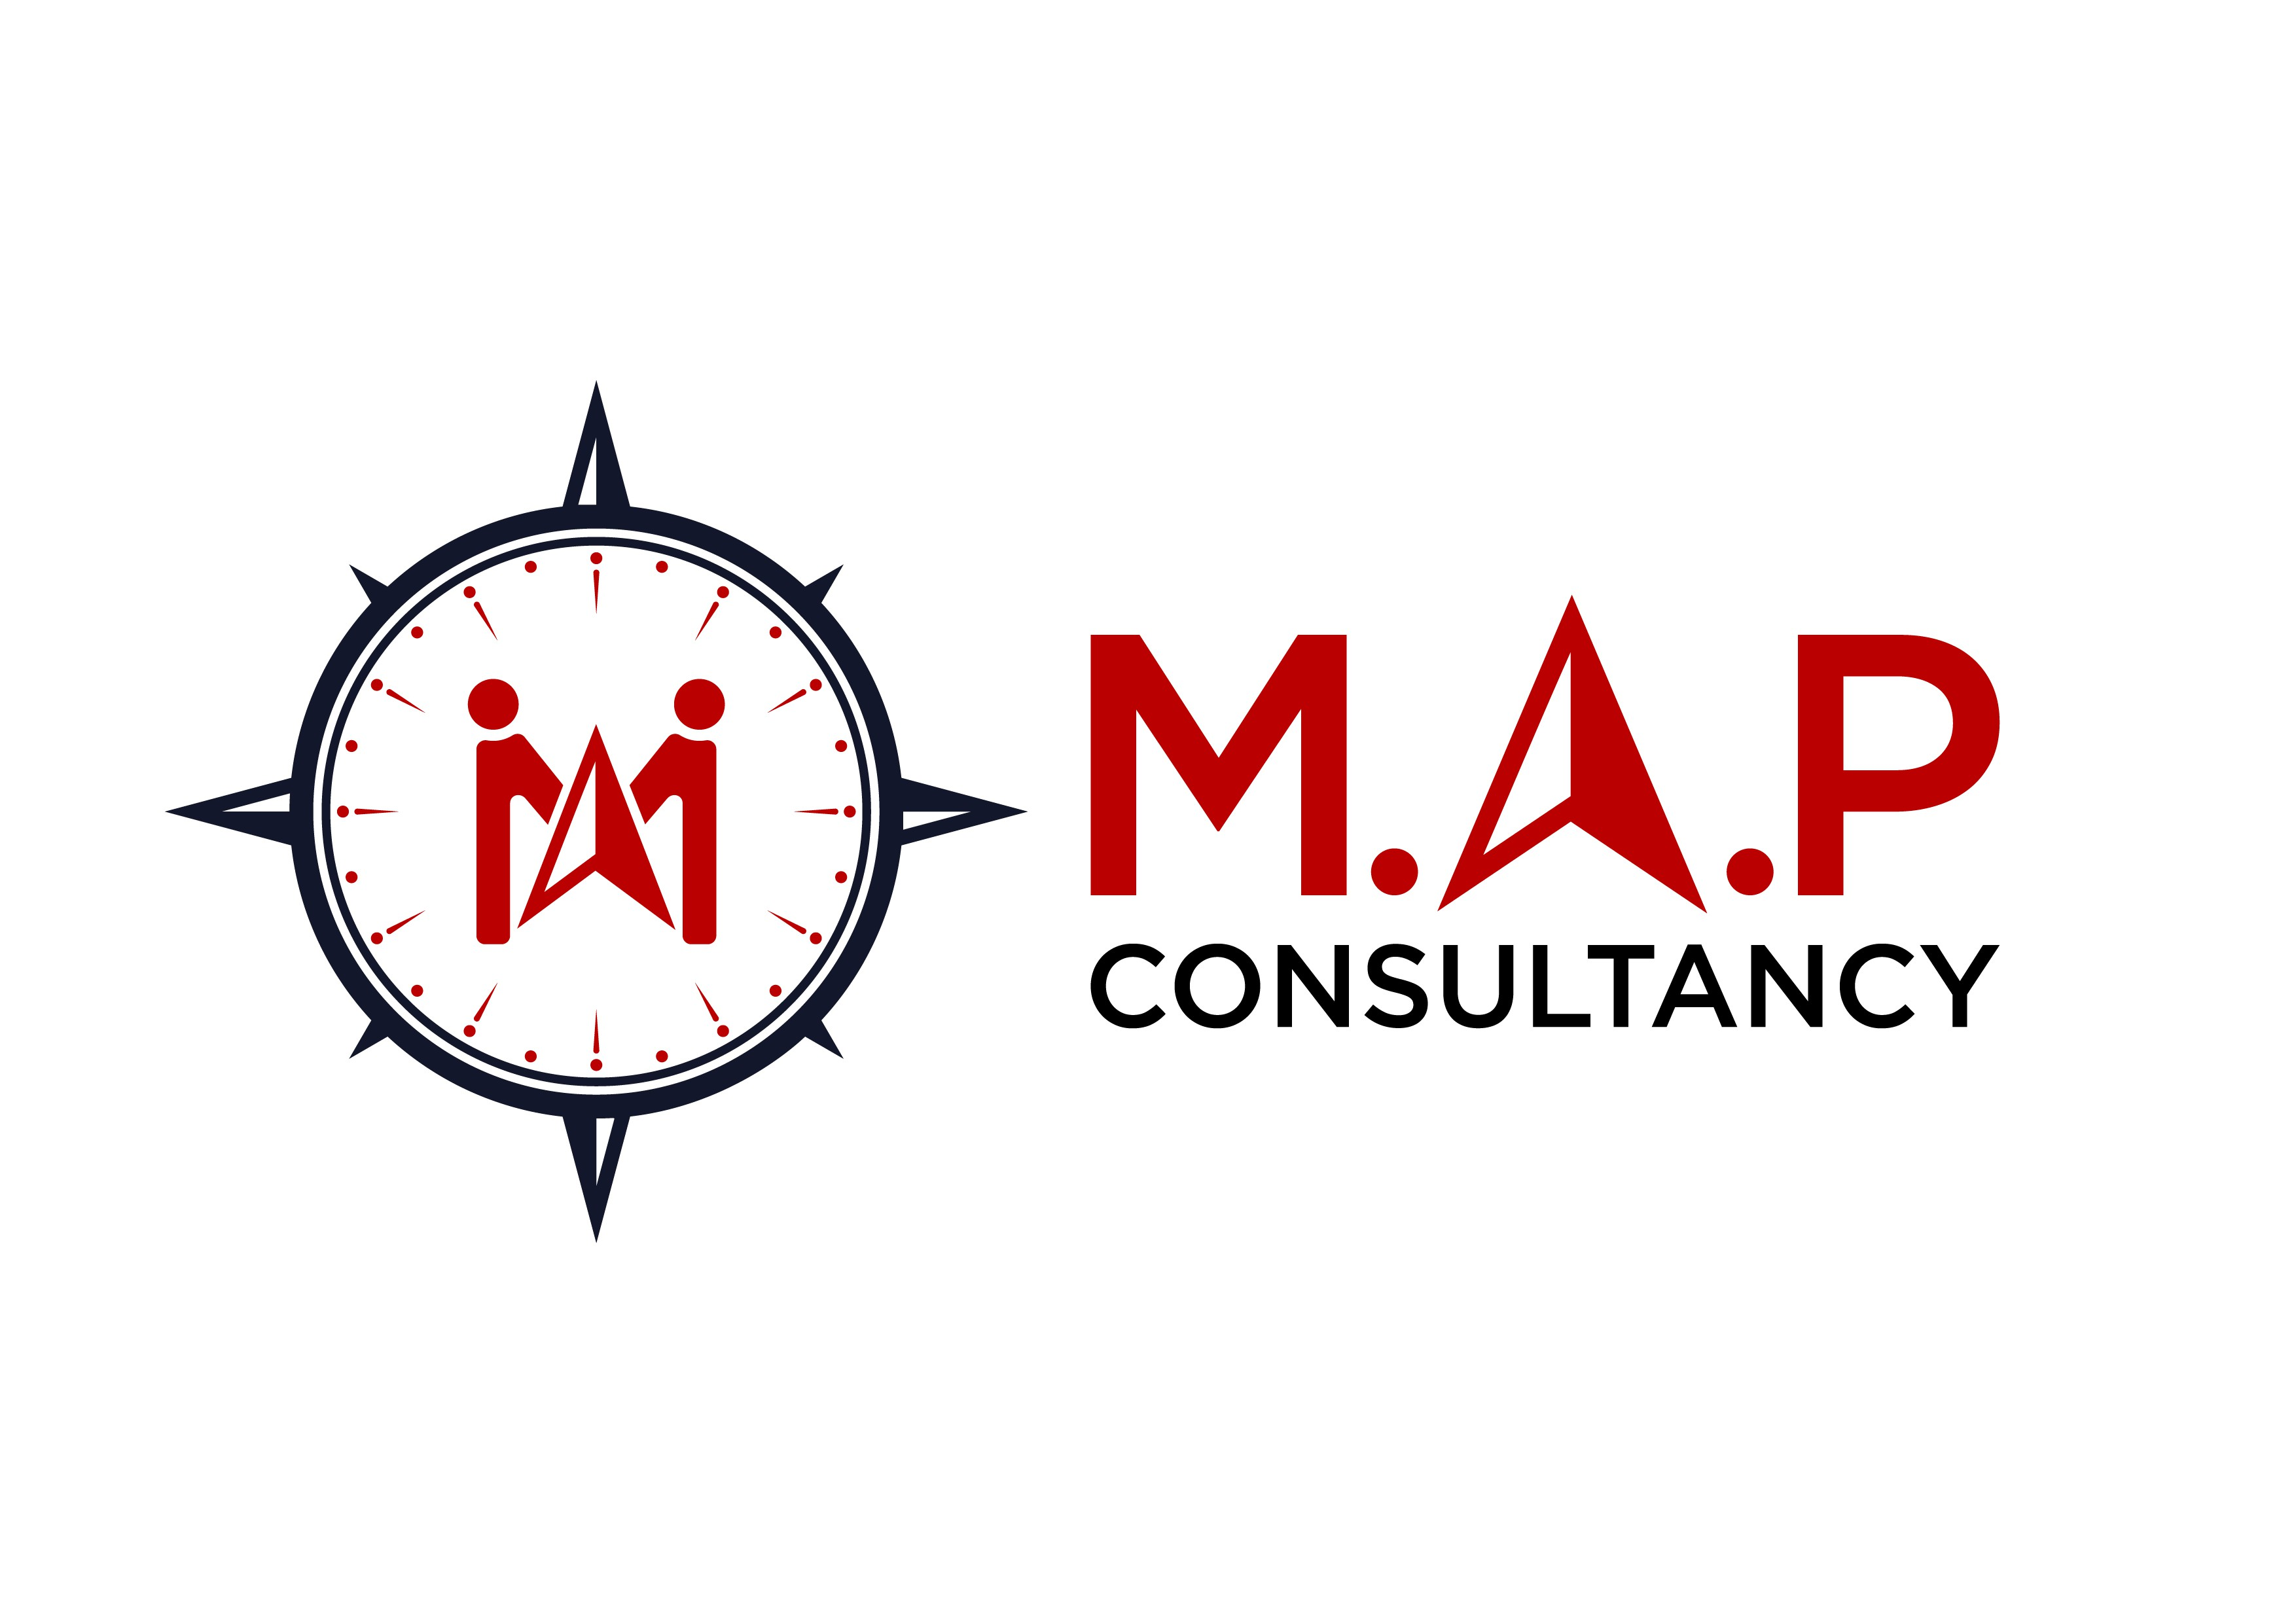 Please help me create the logo that can put my consultancy on the MAP